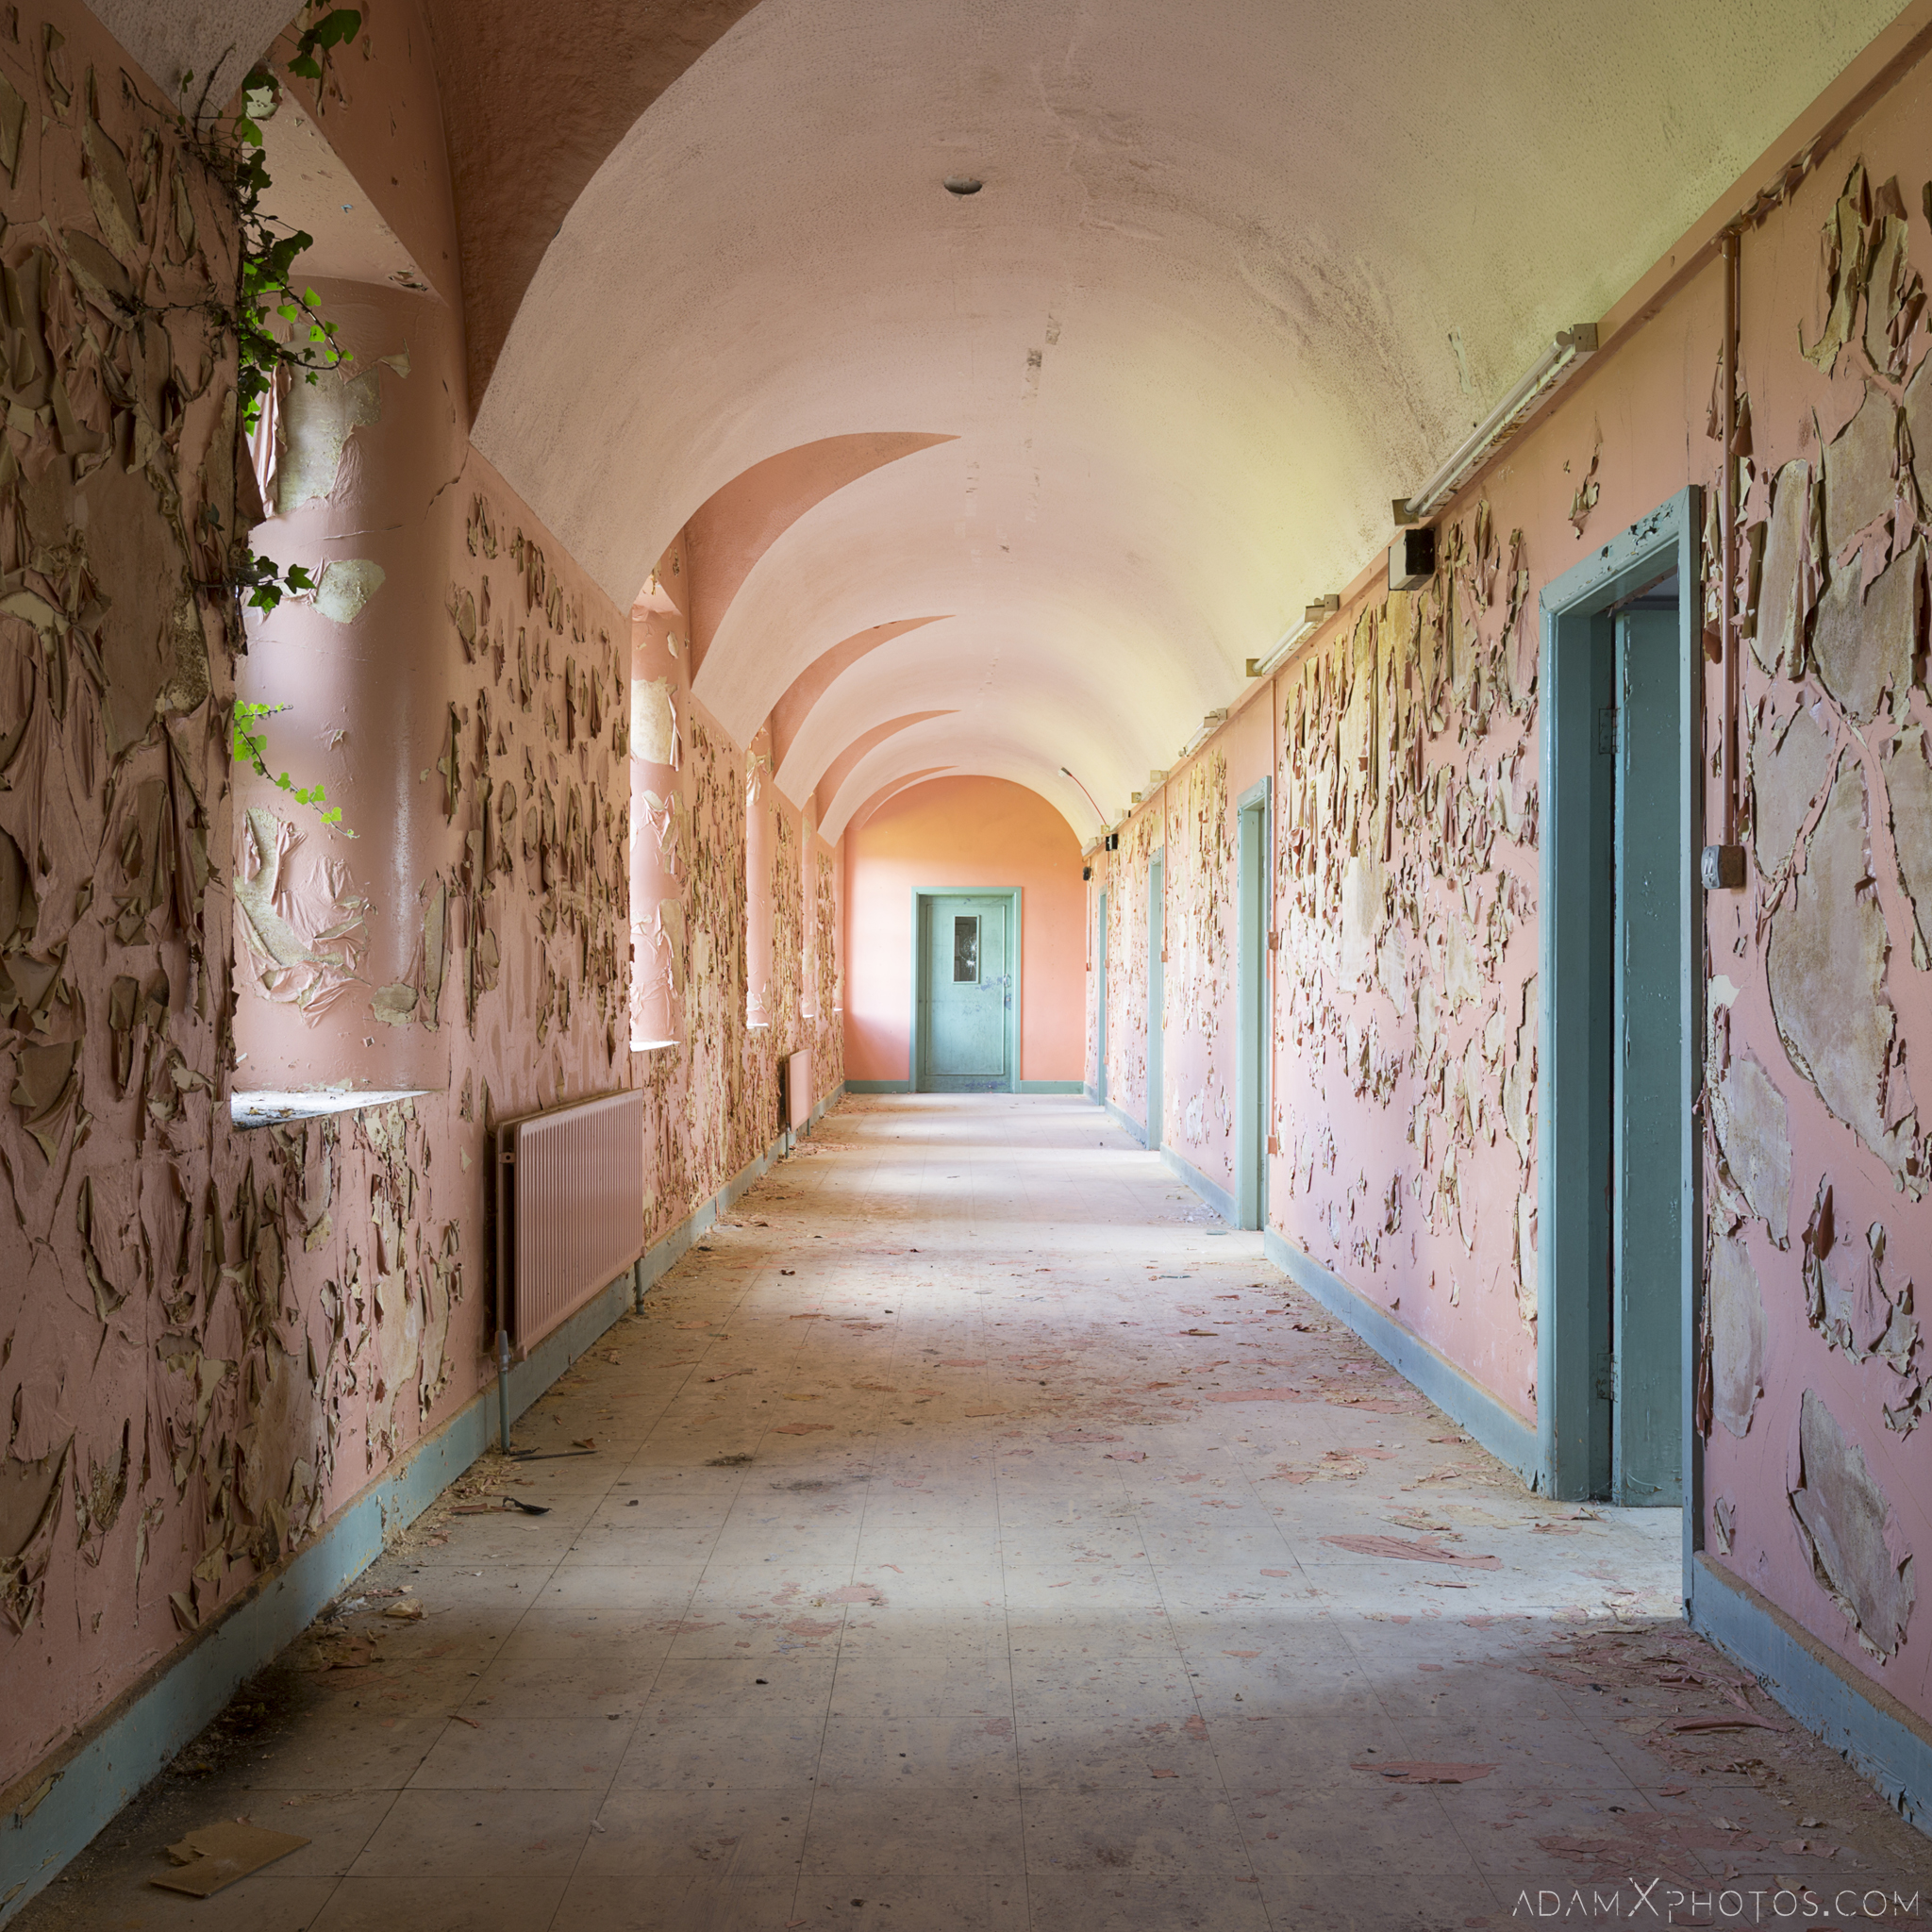 pink and blue corridor ivy peeling paint Connacht District Lunatic Asylum St Brigid's Hospital Adam X Urbex Urban Exploration Ireland Ballinasloe Access 2017 Abandoned decay lost forgotten derelict location creepy haunting eerie